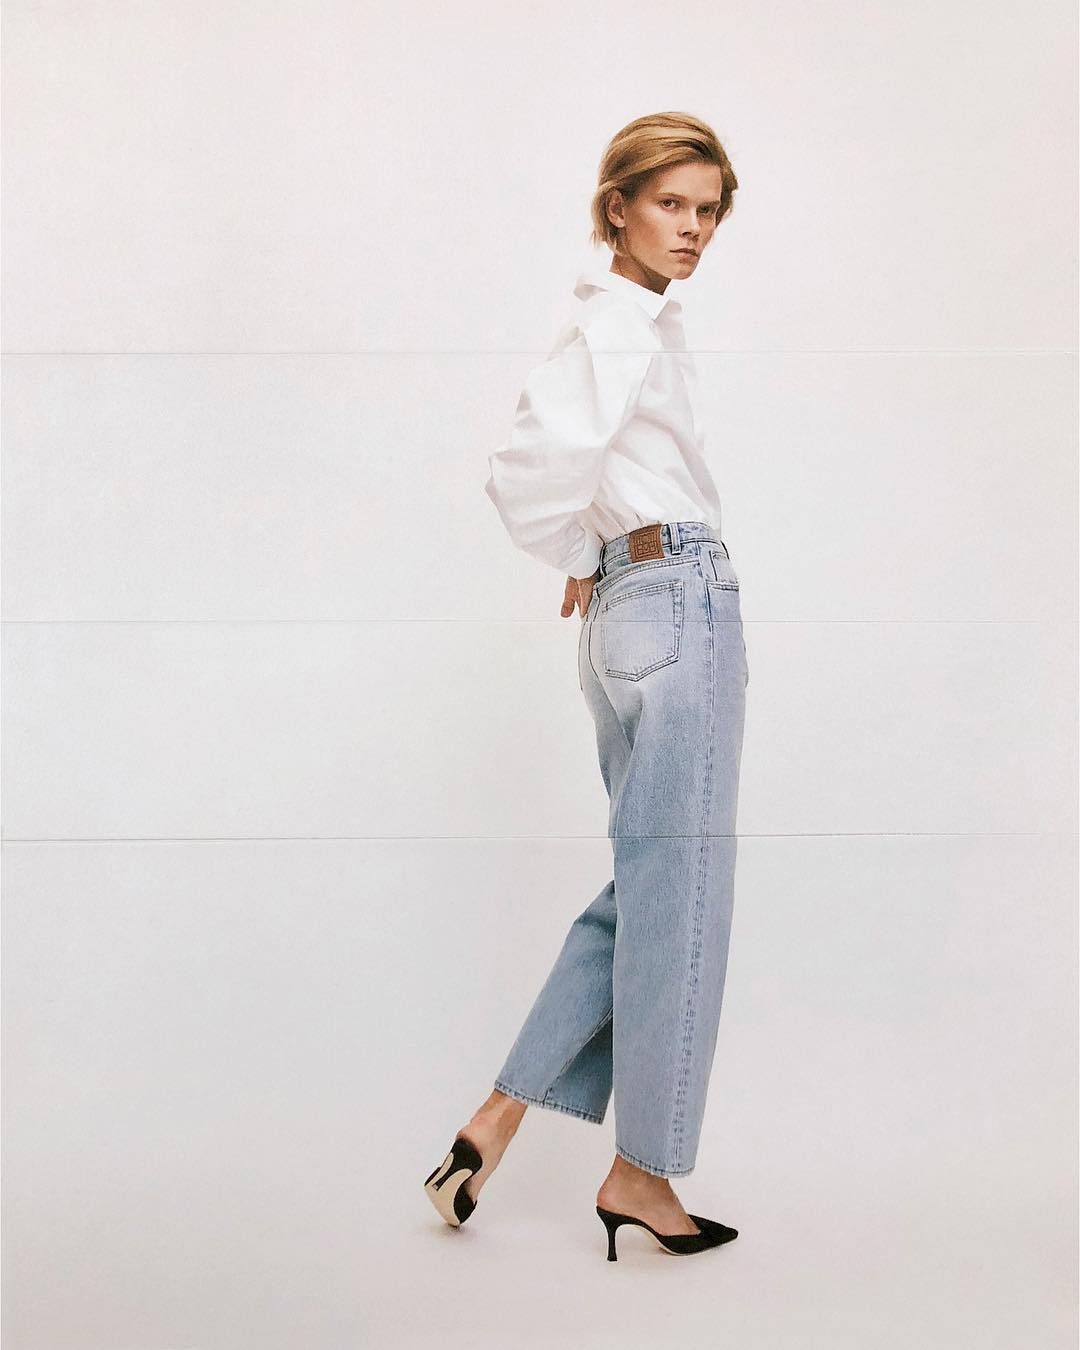 Simple Chic Fall Look Idea—White, Shirt, Jeans, Mule Heels